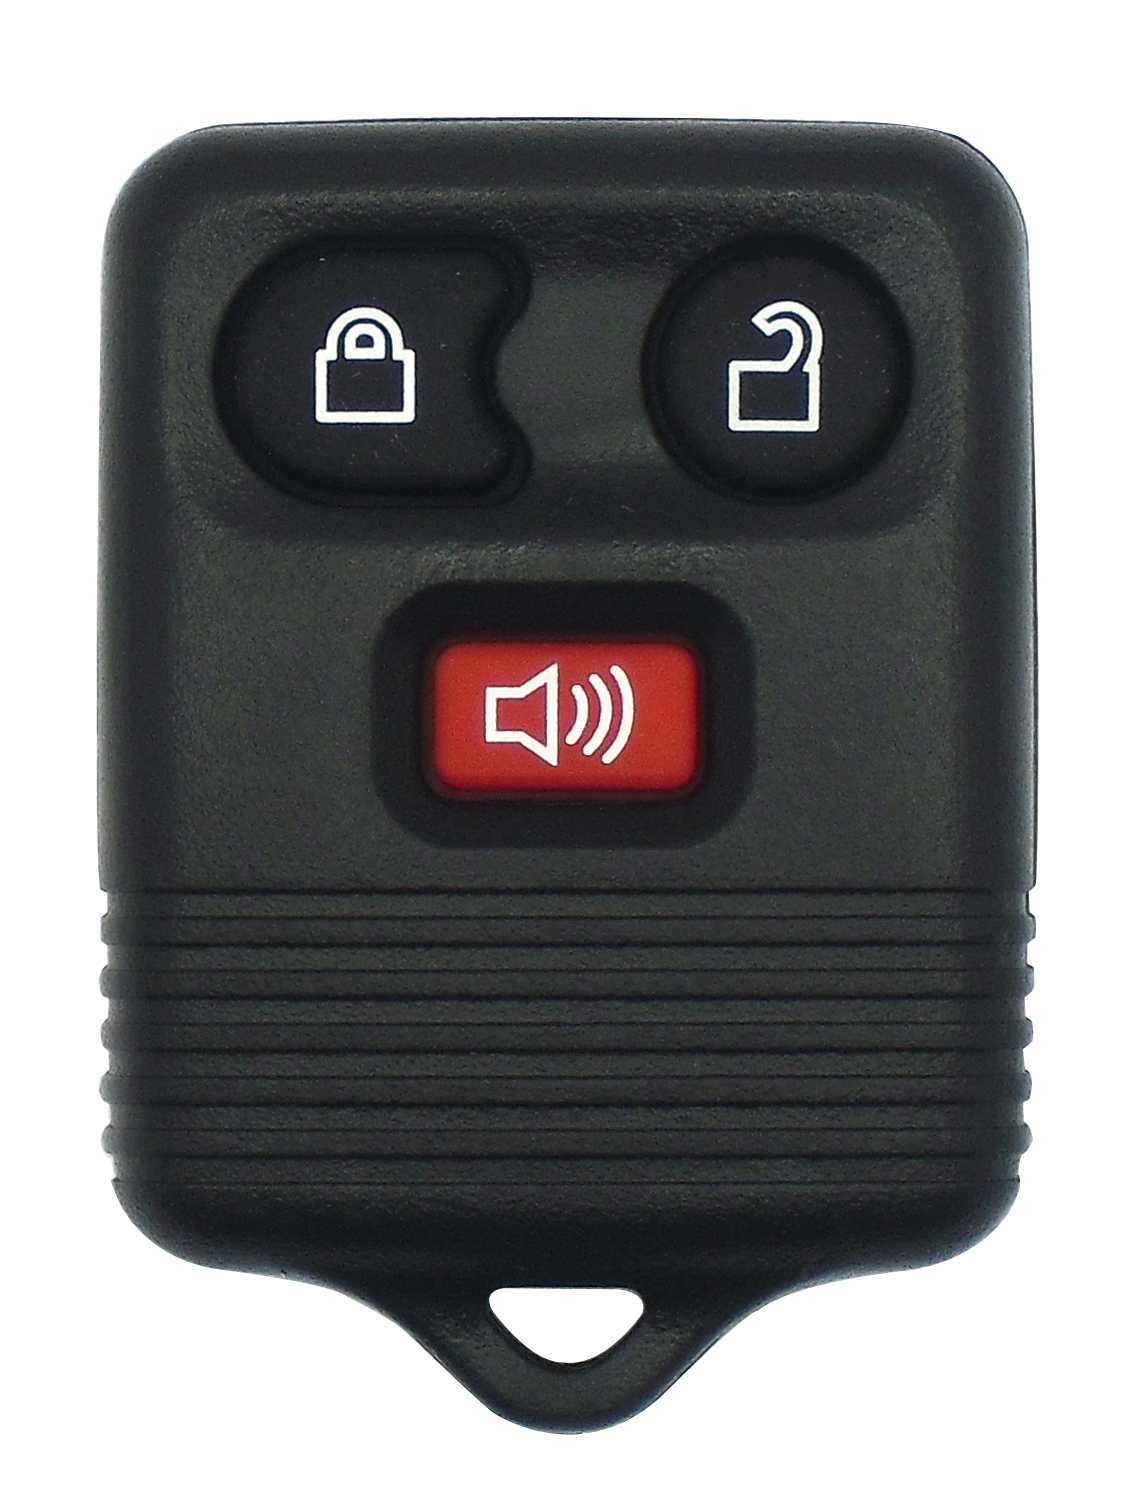 Ford Keyless Entry Car Remote - 3 Button